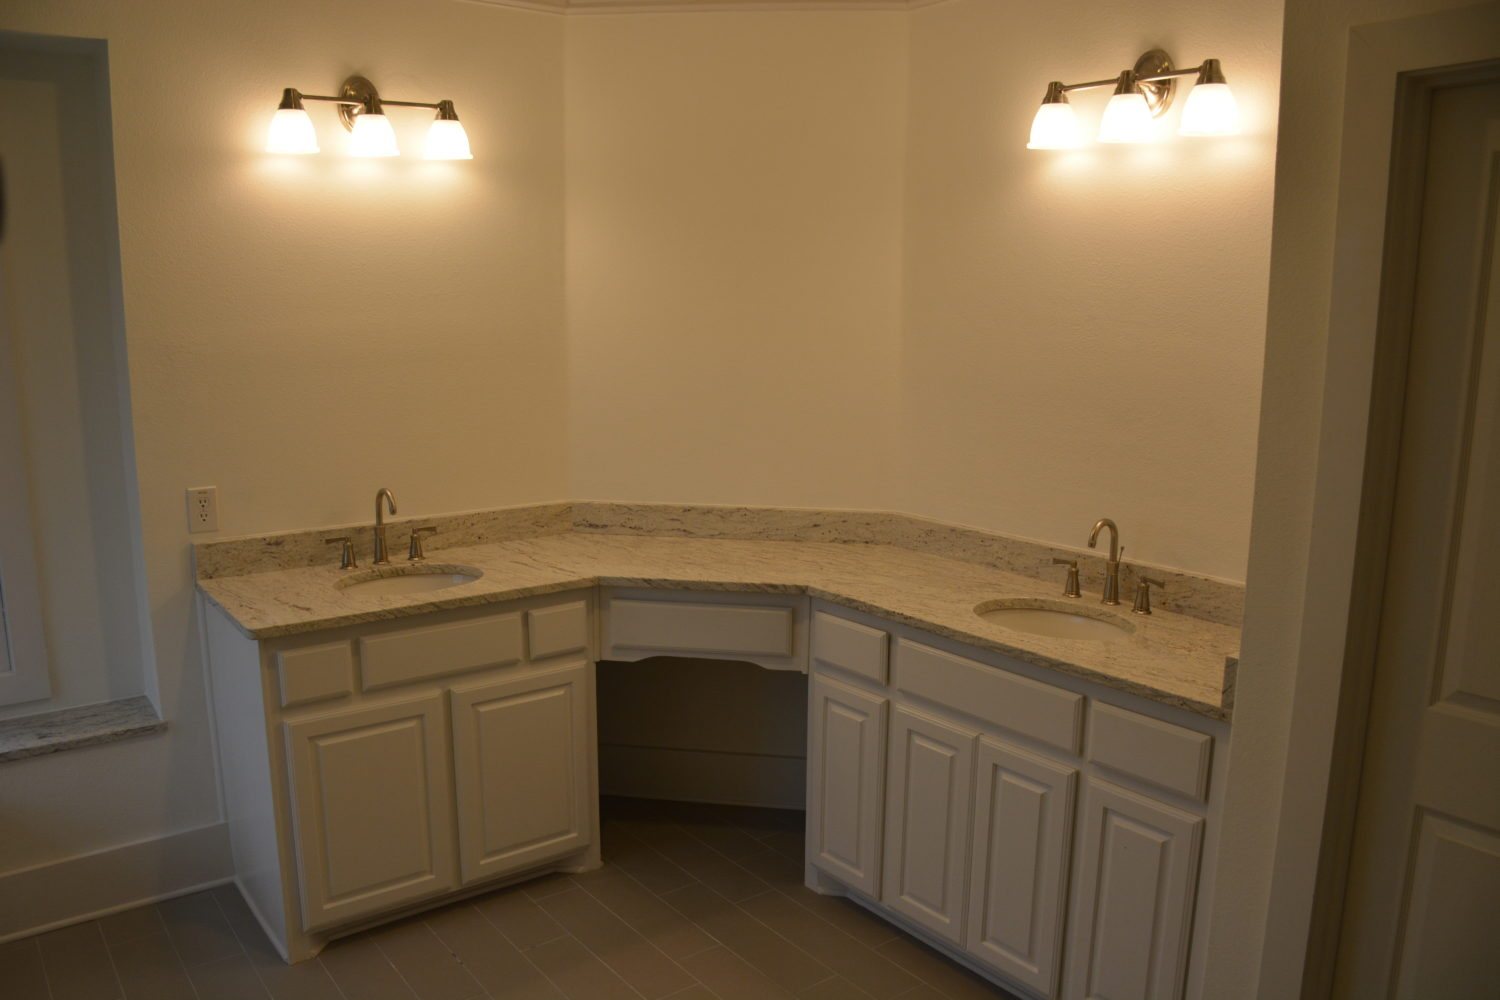 East Dallas Bathroom Remodel Richardson Kitchen And Bathroom Remodeling Montfort Designs Llc